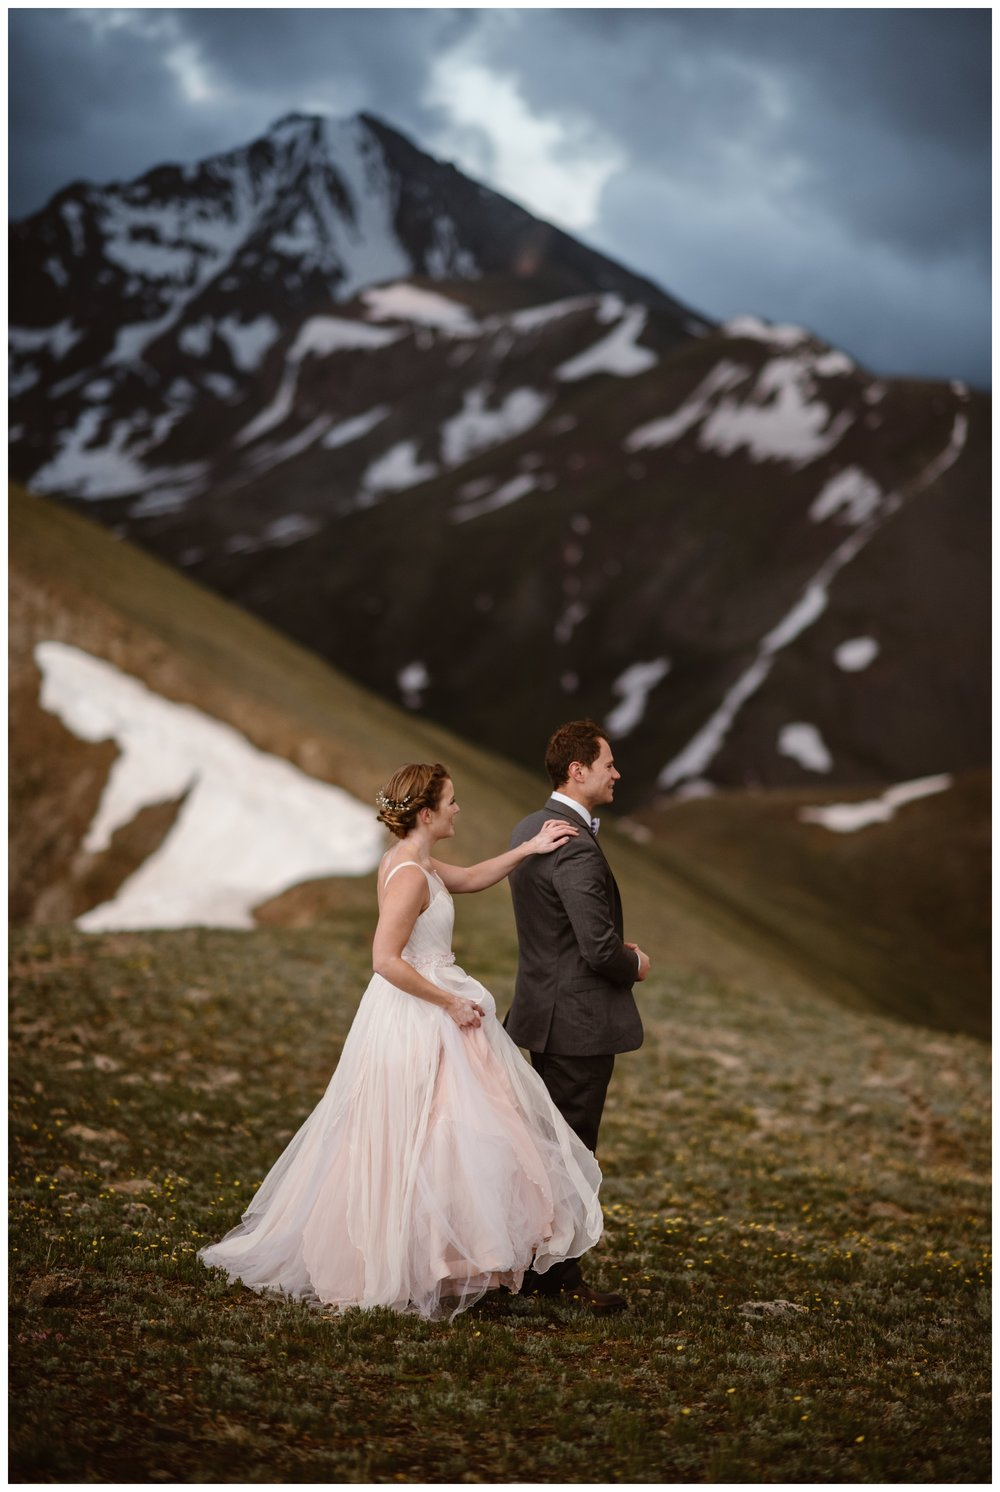 Marcela taps Vasily on the shoulder for their first look with the jagged peaks of the Sawatch Range of the Rocky Mountains behind them before their intimate two person elopement. Photo by Maddie Mae, Adventure Instead.